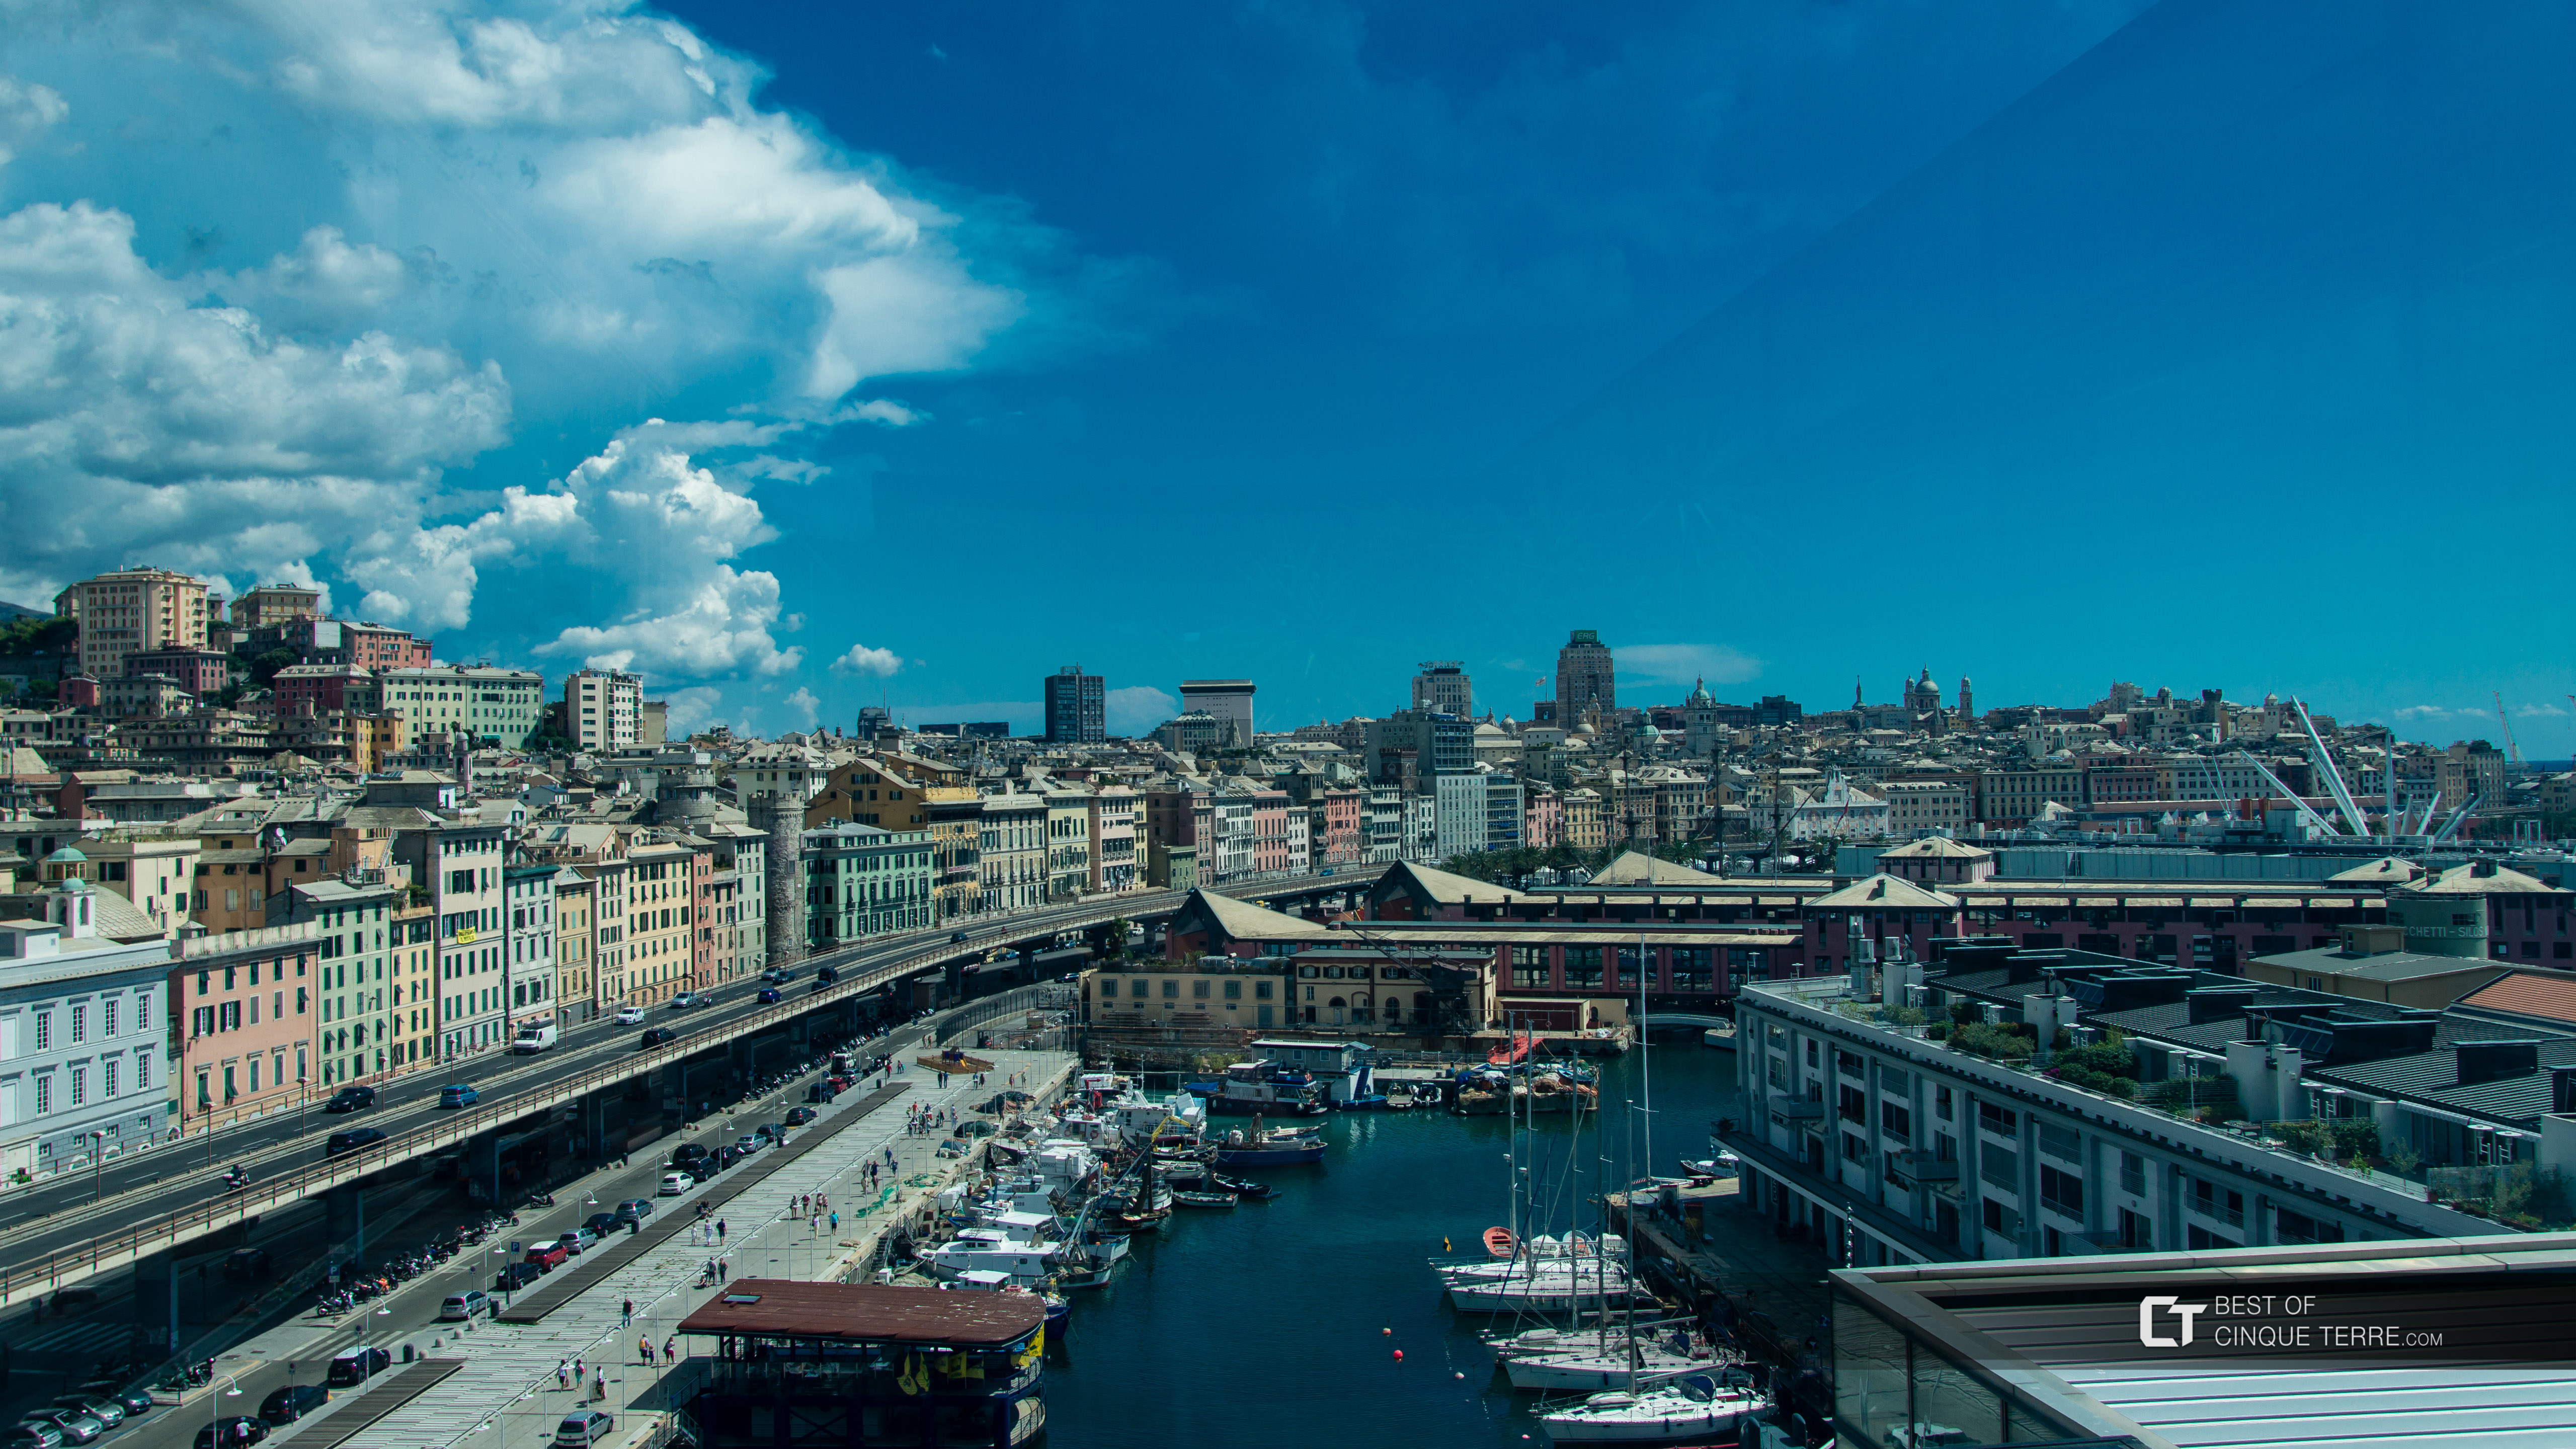 The view from the roof of the Museum of the Sea on the waterfront, Genoa, Italy